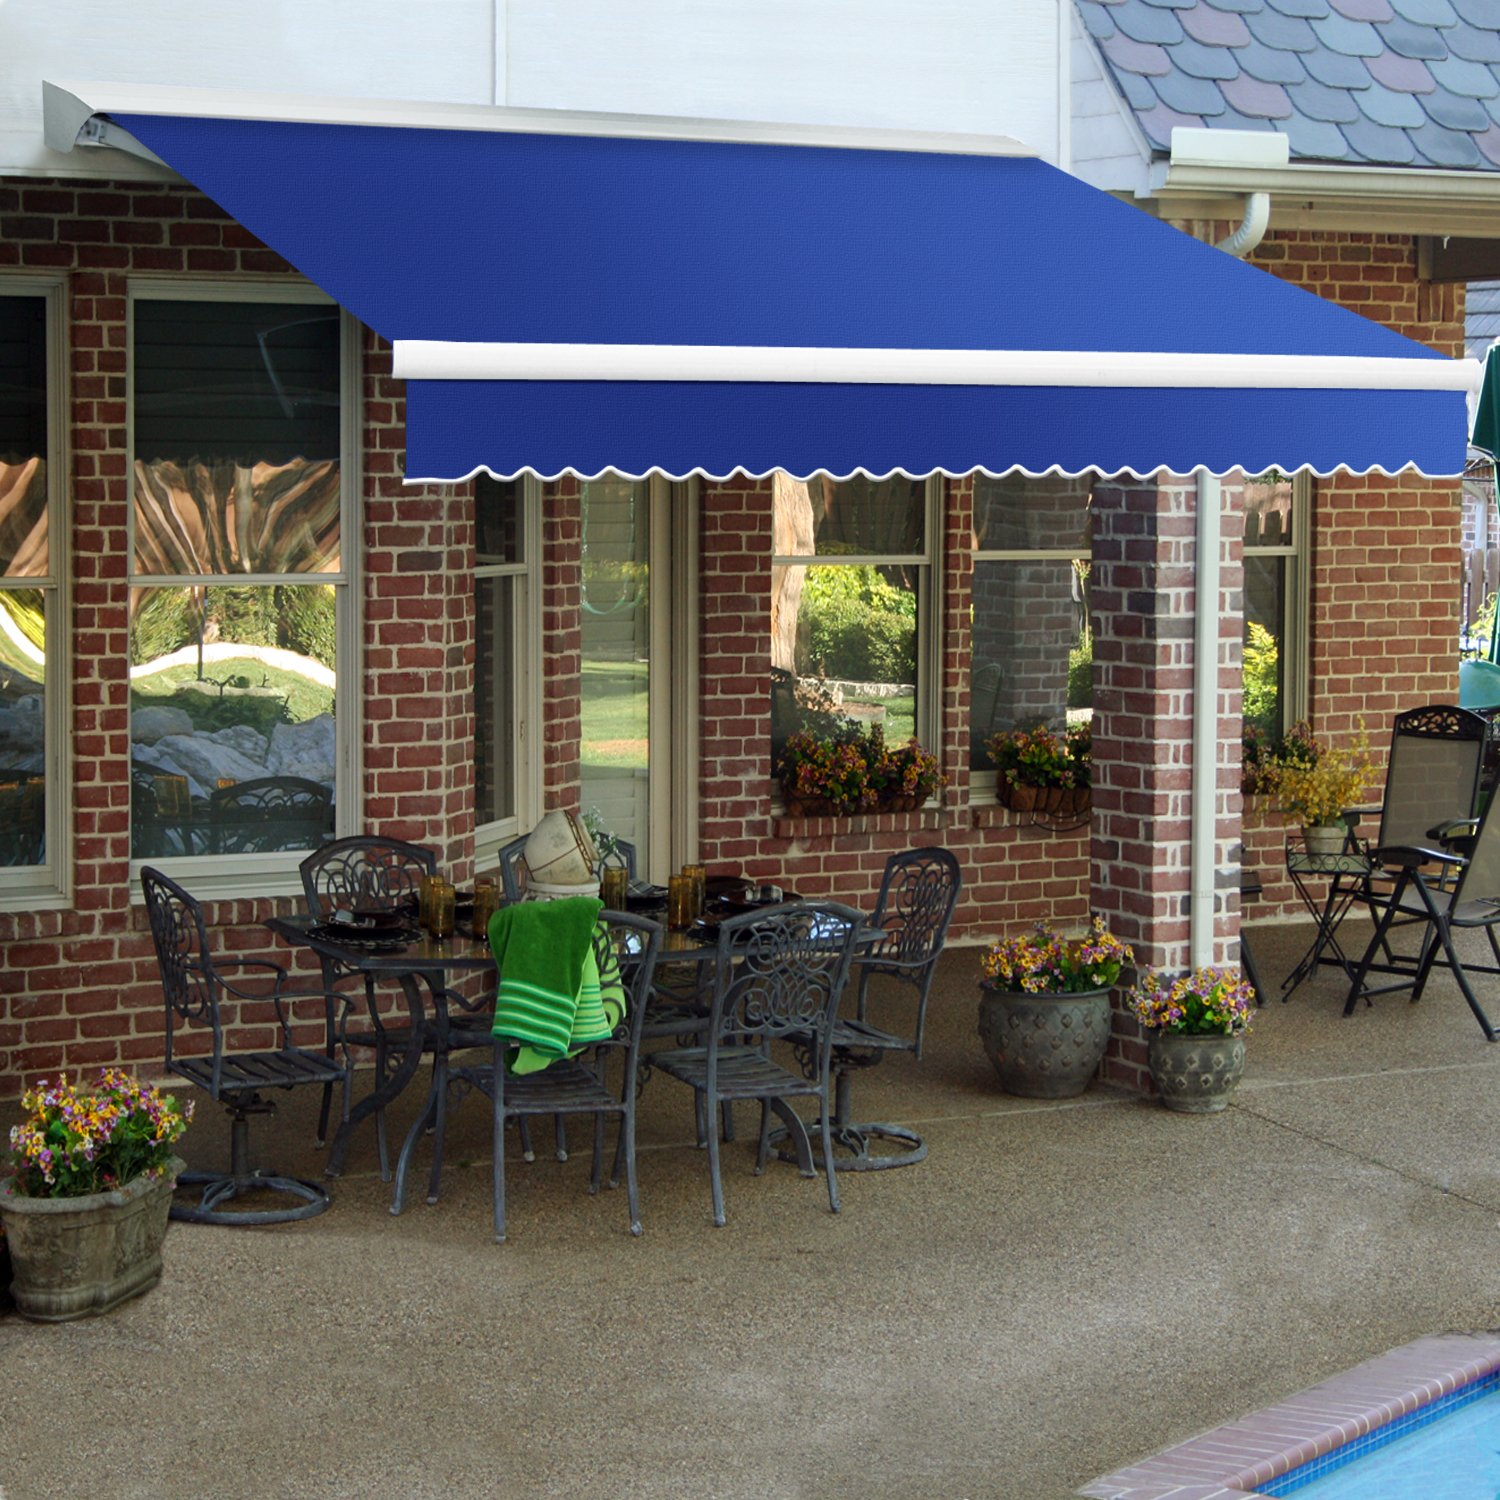 Awntech 8-Feet Destin LX with Hood Manual Retractable Acrylic Awning, 84-Inch Projection, Blue